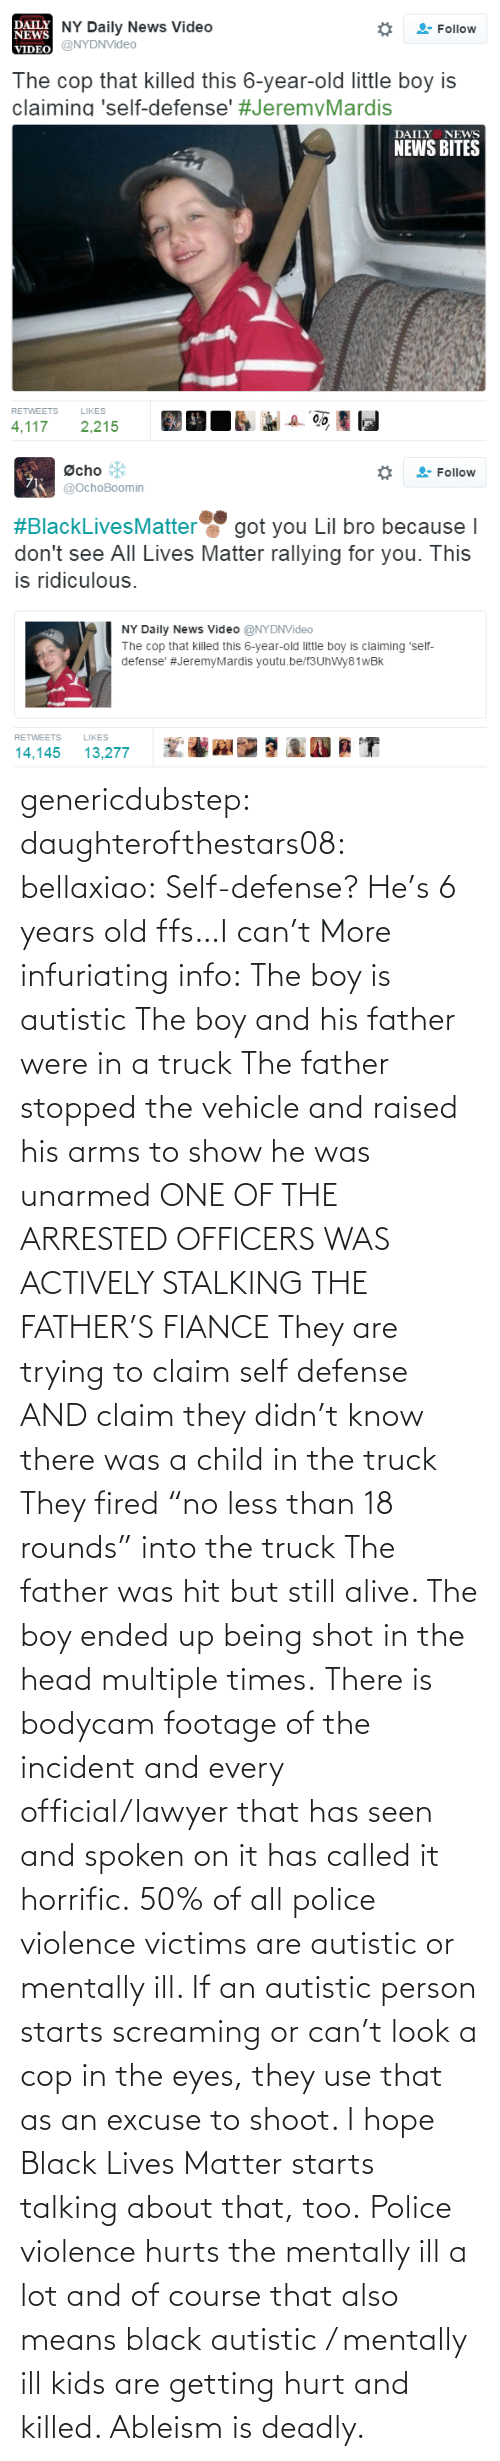 "Múltiple: genericdubstep: daughterofthestars08:  bellaxiao:  Self-defense? He's 6 years old ffs…I can't  More infuriating info: The boy is autistic The boy and his father were in a truck The father stopped the vehicle and raised his arms to show he was unarmed ONE OF THE ARRESTED OFFICERS WAS ACTIVELY STALKING THE FATHER'S FIANCE They are trying to claim self defense AND claim they didn't know there was a child in the truck They fired ""no less than 18 rounds"" into the truck The father was hit but still alive. The boy ended up being shot in the head multiple times. There is bodycam footage of the incident and every official/lawyer that has seen and spoken on it has called it horrific.  50% of all police violence victims are autistic or mentally ill. If an autistic person starts screaming or can't look a cop in the eyes, they use that as an excuse to shoot. I hope Black Lives Matter starts talking about that, too. Police violence hurts the mentally ill a lot and of course that also means black autistic / mentally ill kids are getting hurt and killed. Ableism is deadly."